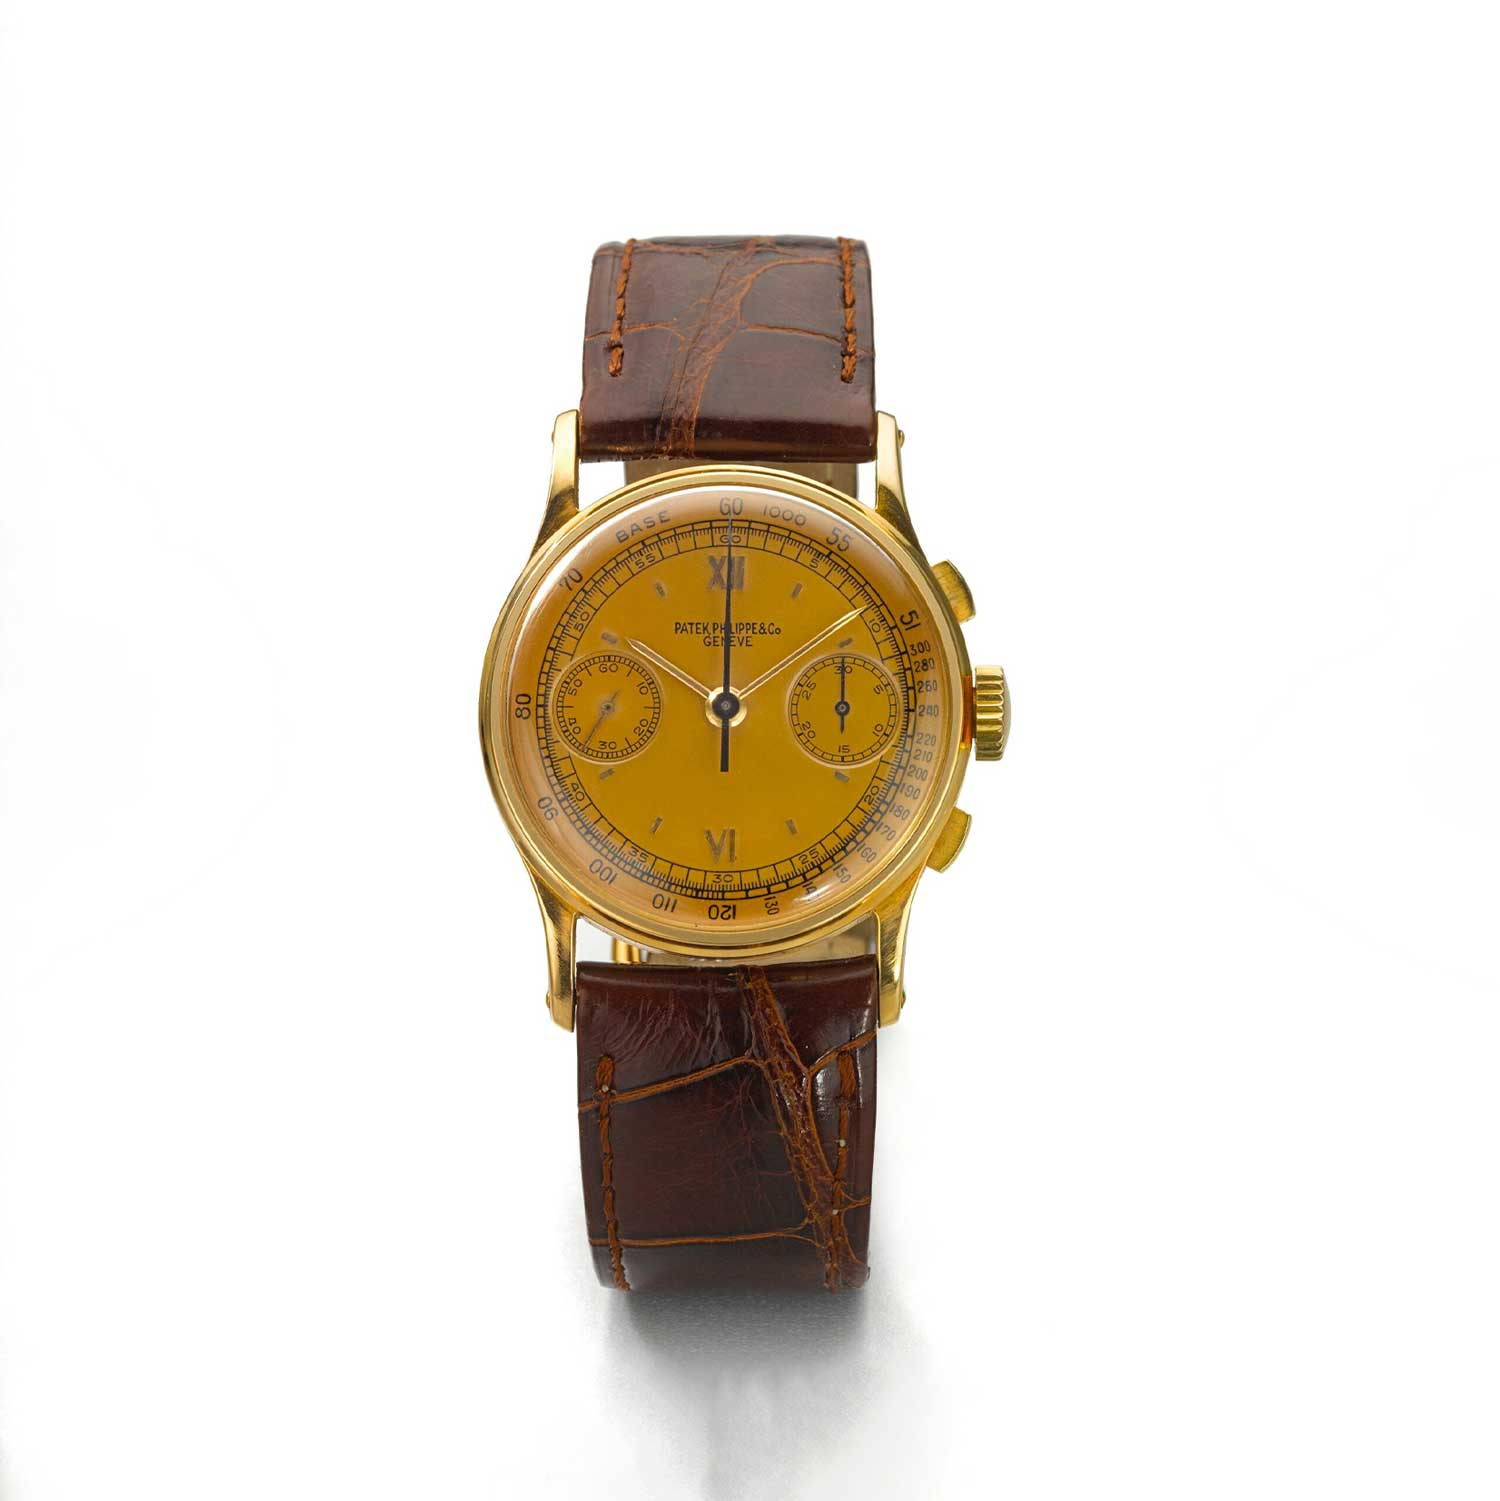 1945 Patek Philippe ref. 130 pink gold chronograph with applied Roman six and 12 on a pink gold dial (Image: Sothebys.com)